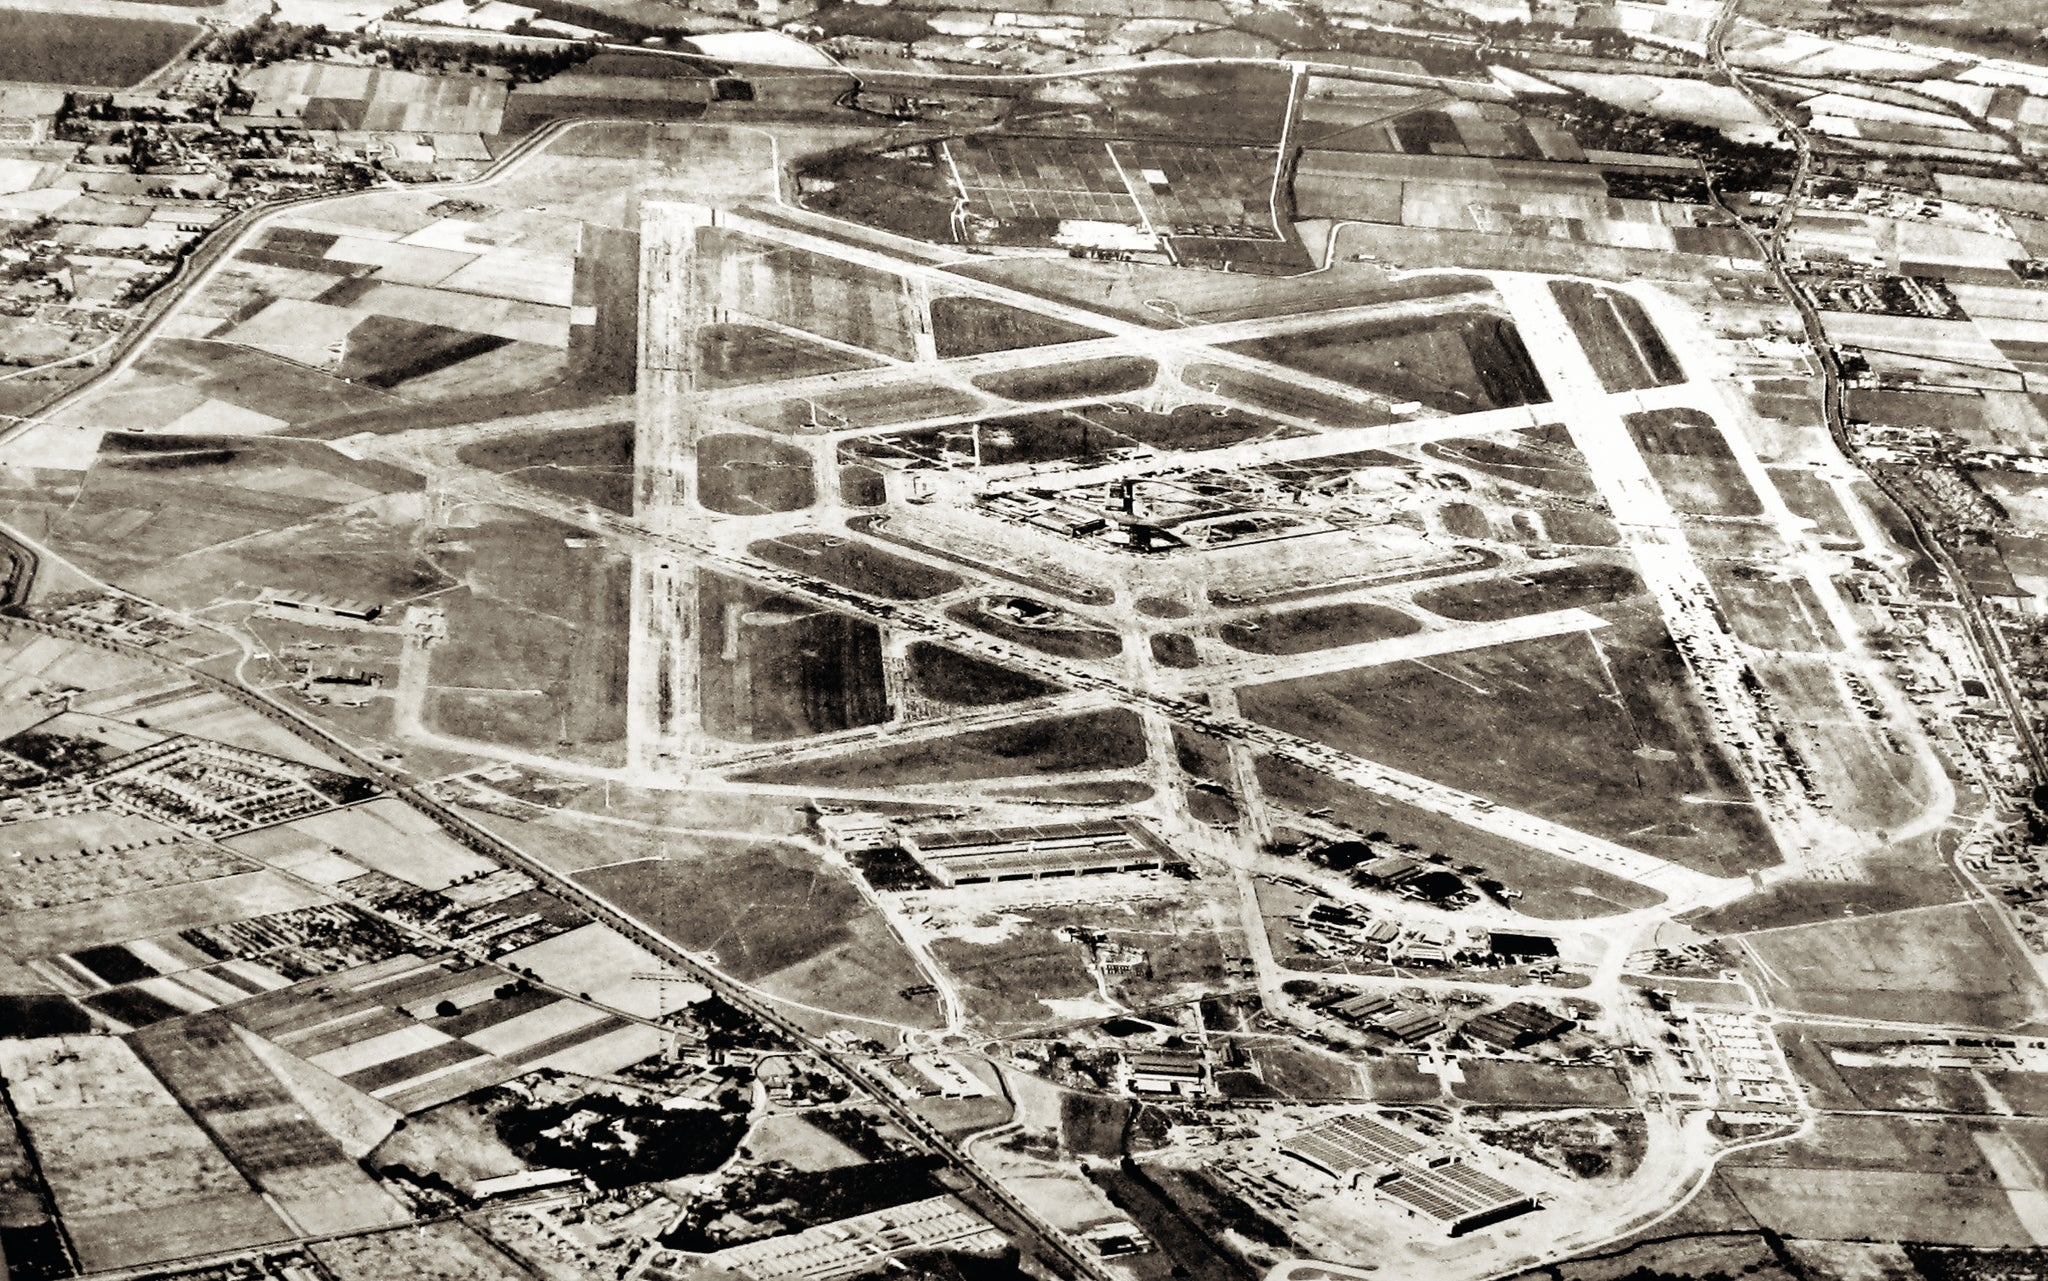 An aerial view of the airport in 1949